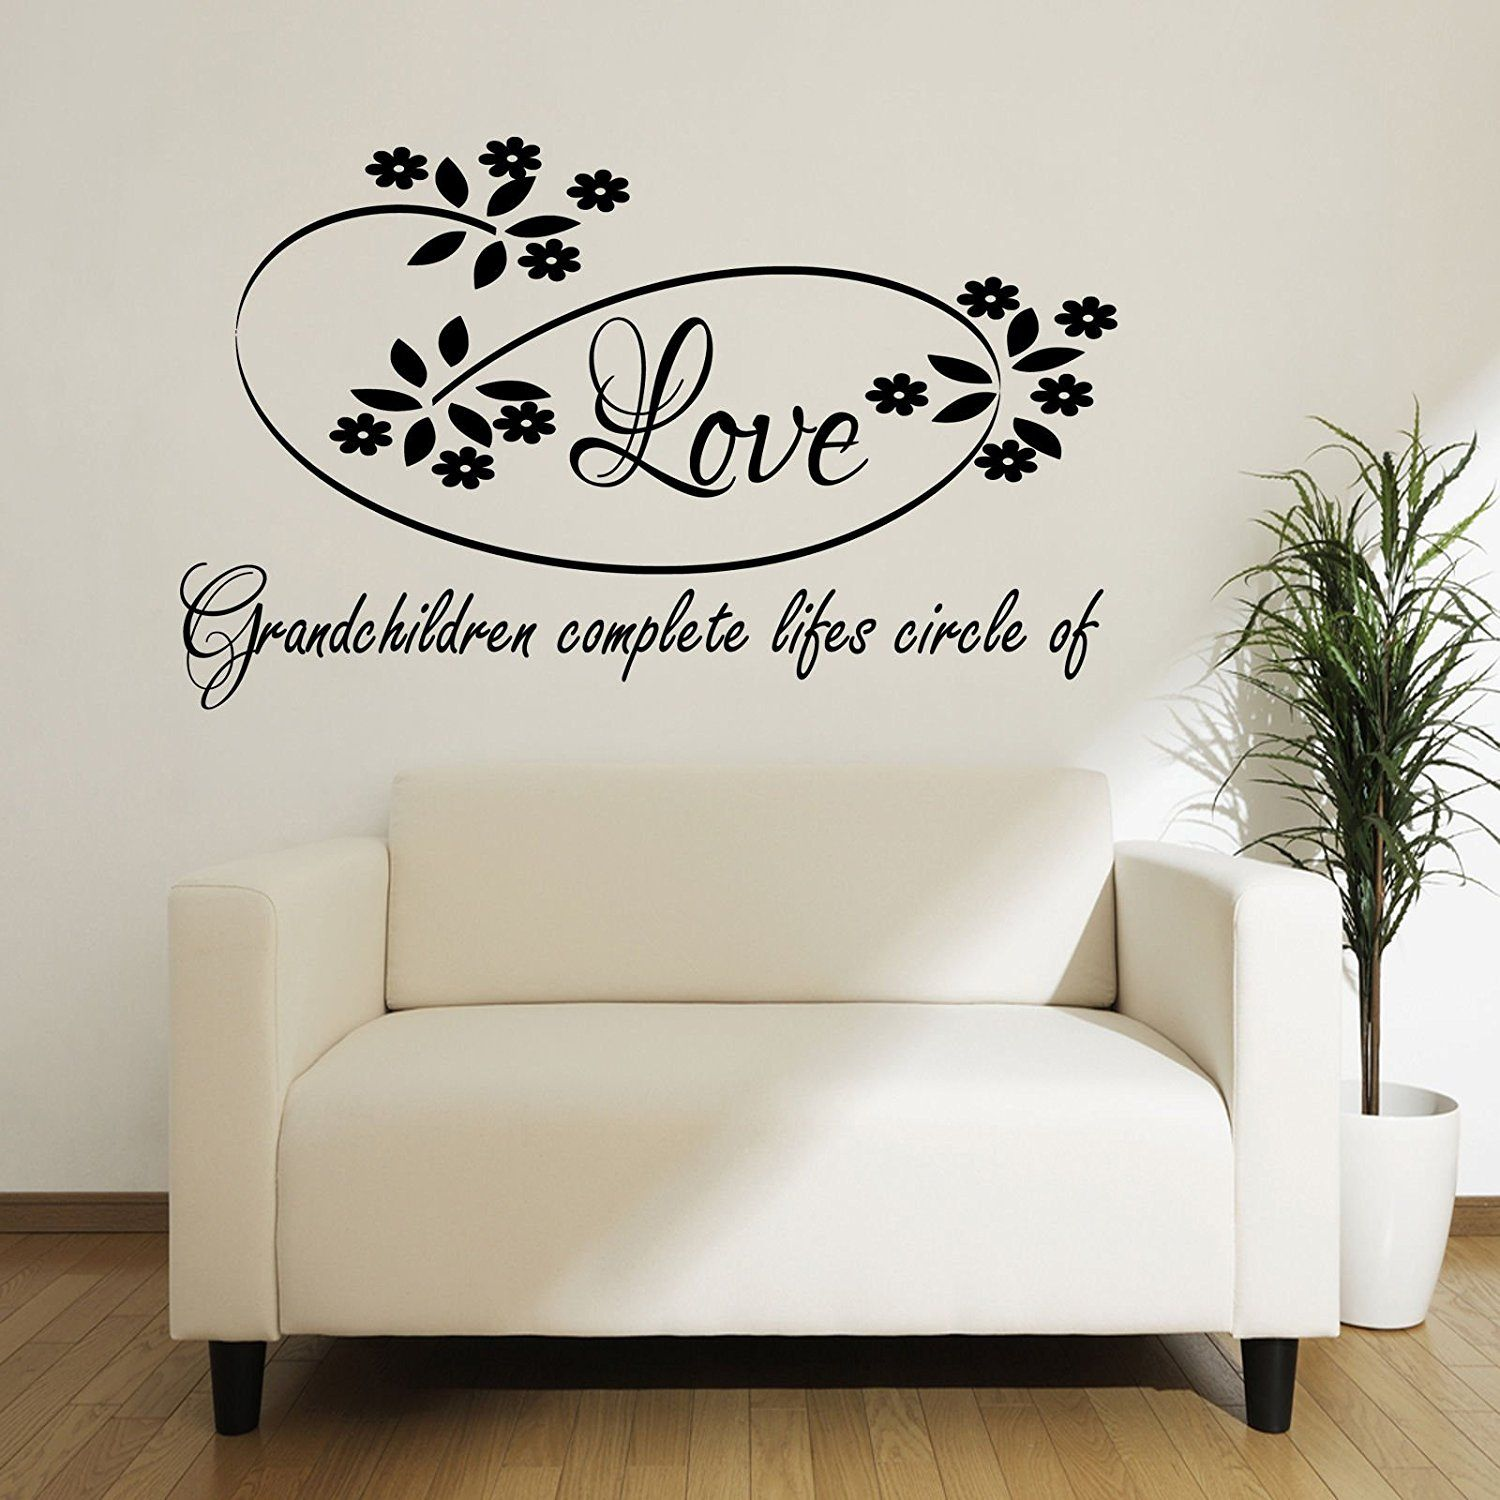 Grandchildren complete lifes circle of love ART wall quote ...